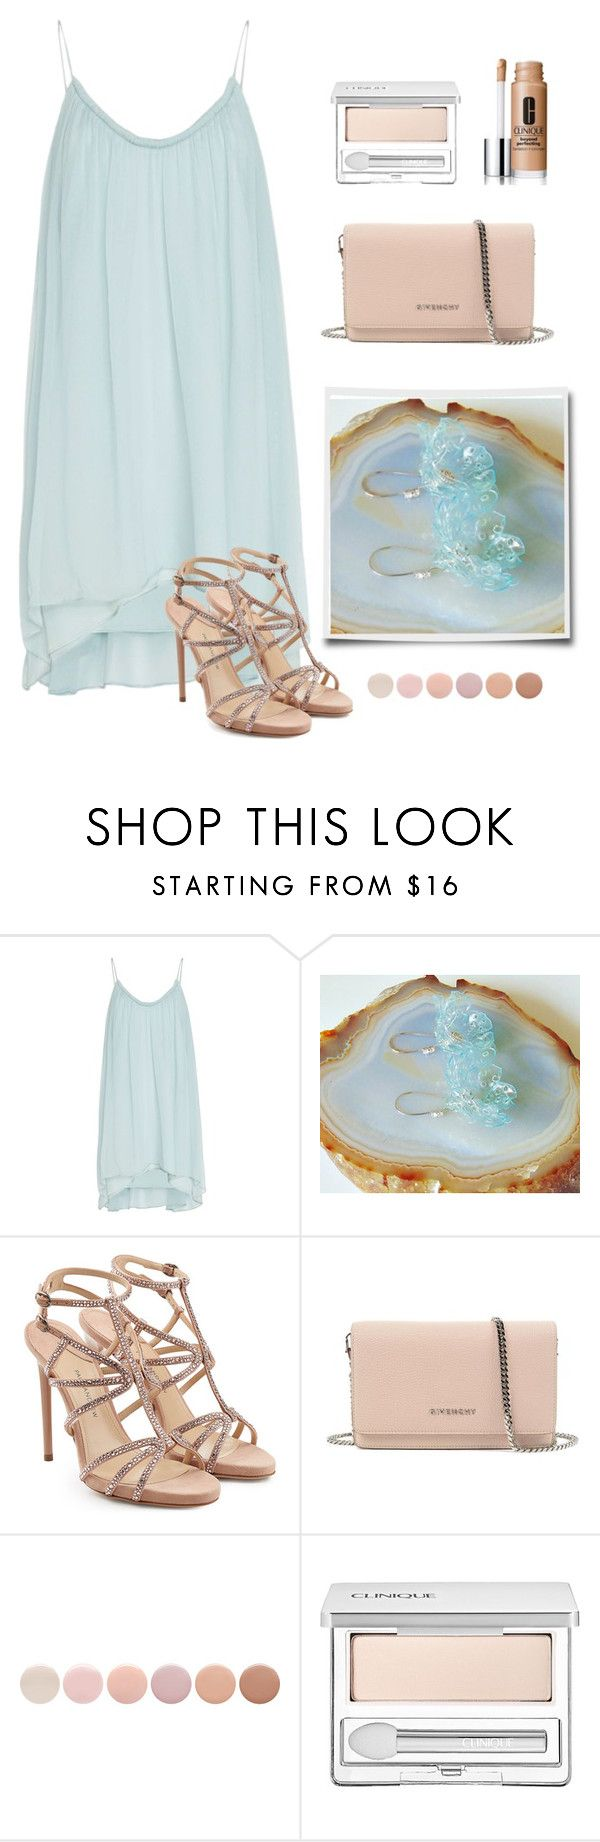 Pastel by styledonna on Polyvore featuring moda, Elizabeth and James, Paul Andrew, Givenchy, Clinique and Deborah Lippmann